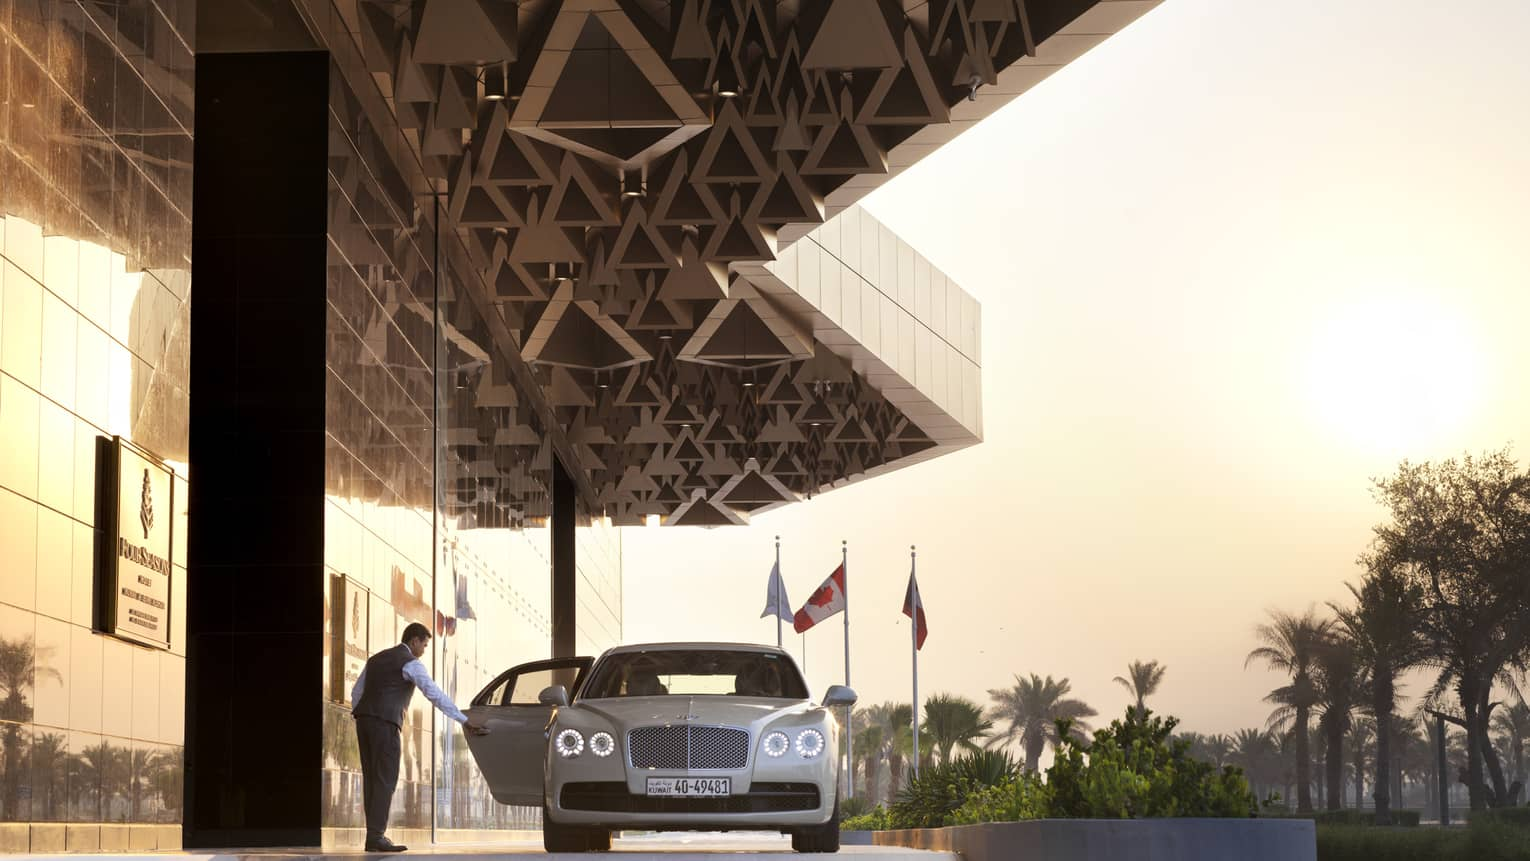 Four Seasons Hotel Kuwait doorman opens luxury car door near entrance